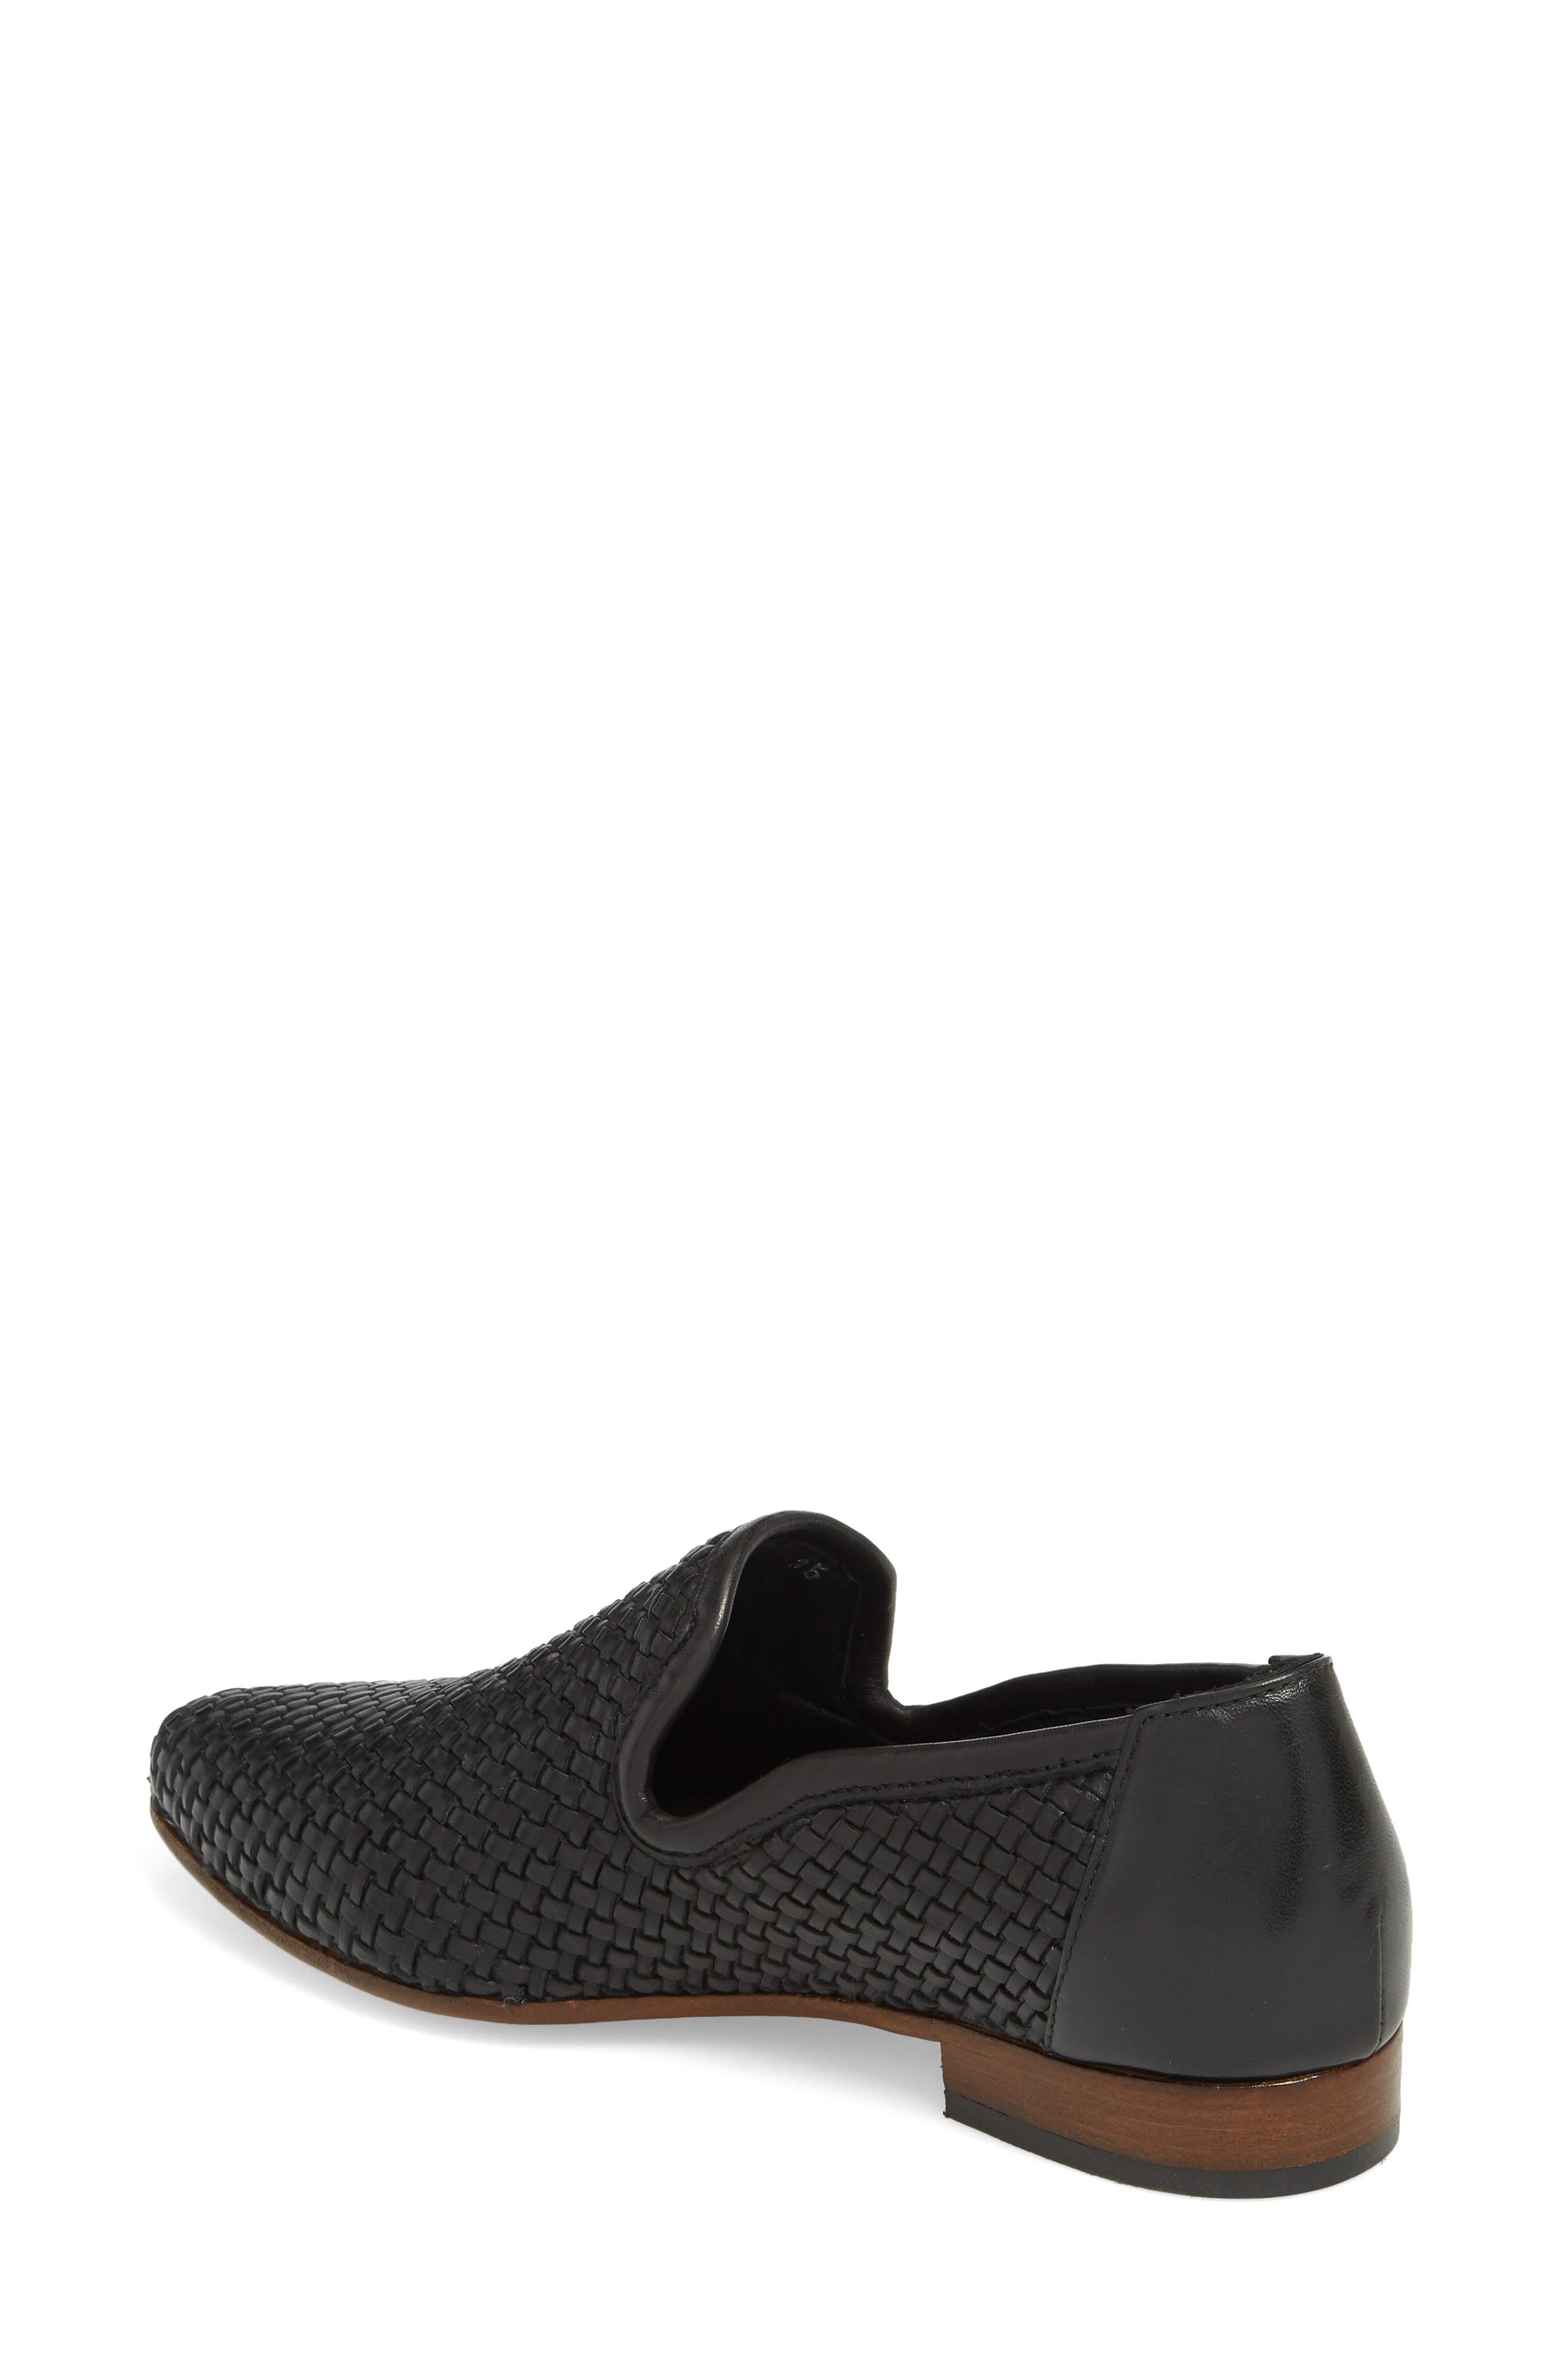 Yara Woven Slip-On Loafer,                             Alternate thumbnail 2, color,                             Onyx Leather